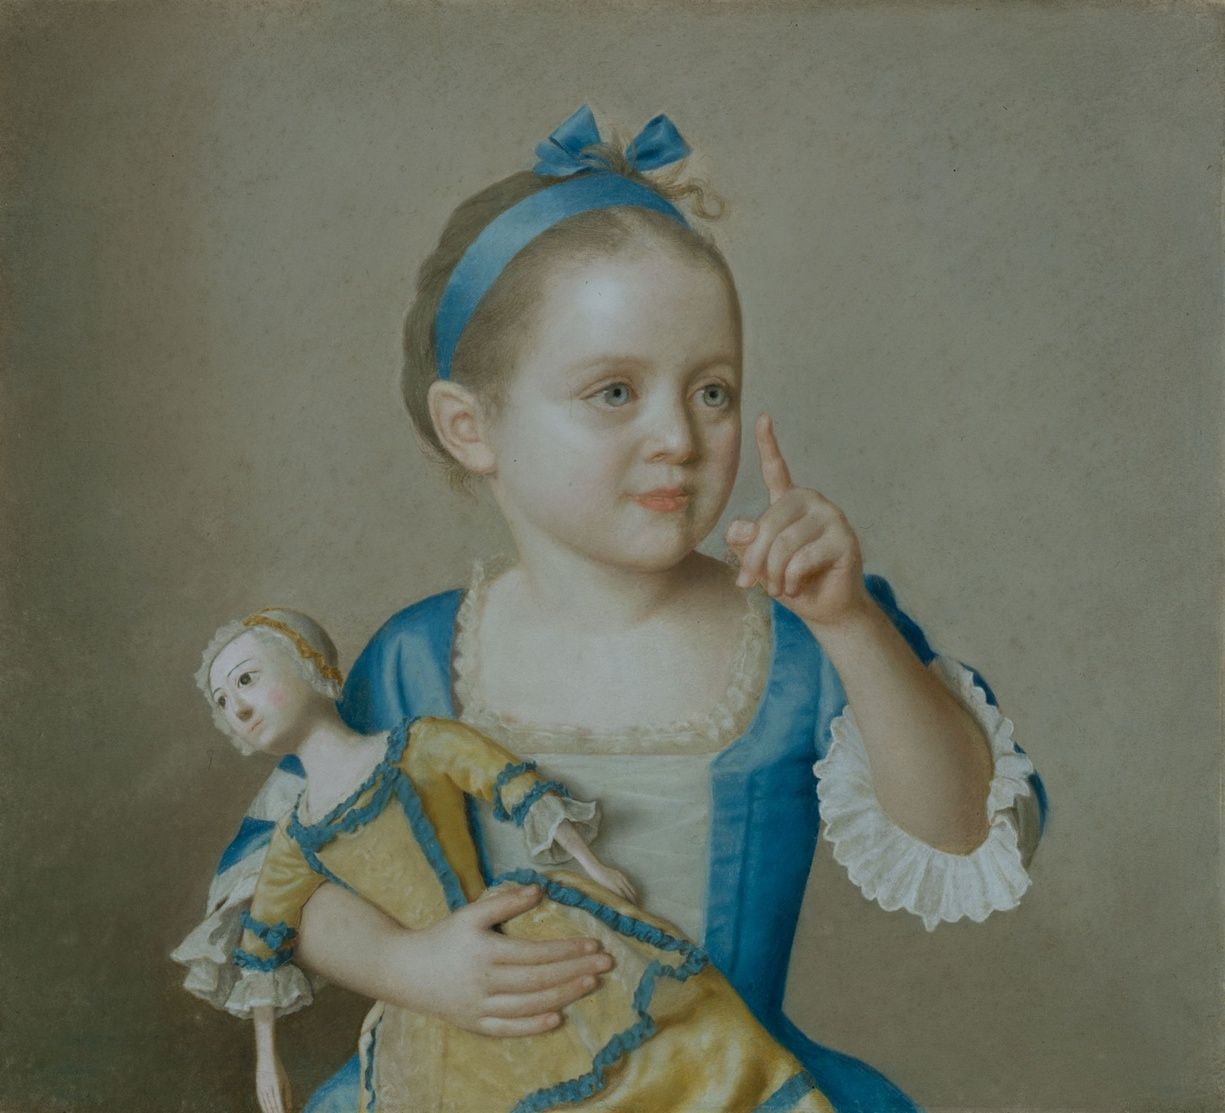 Marie-Anne Françoise Liotard with a Doll, c. 1744